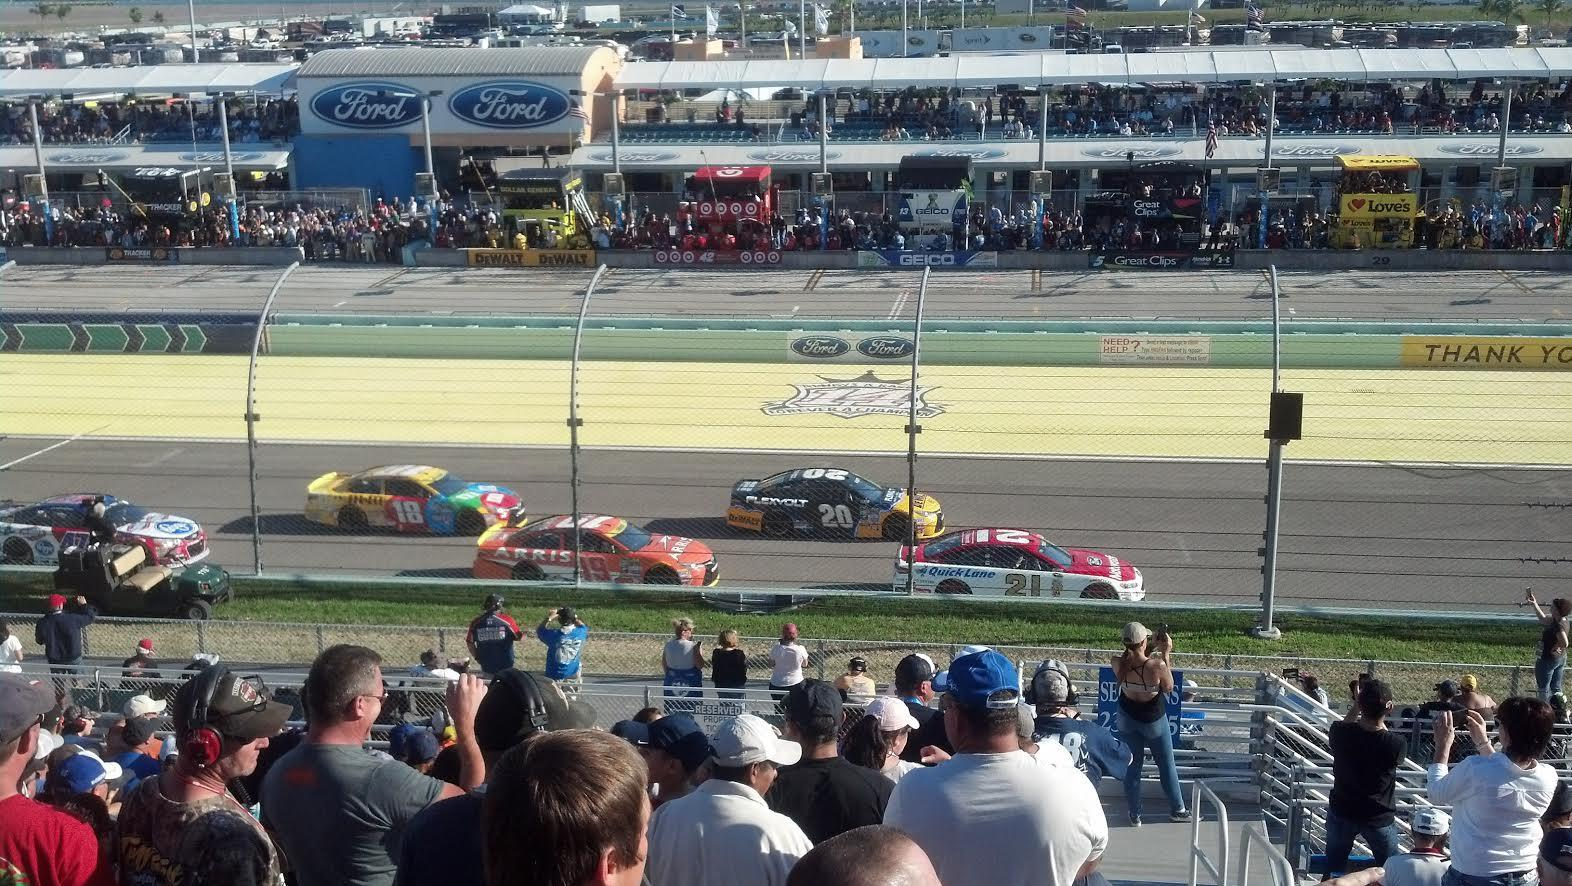 Homestead-Miami Speedway Section 236 Row 15 Seat 1